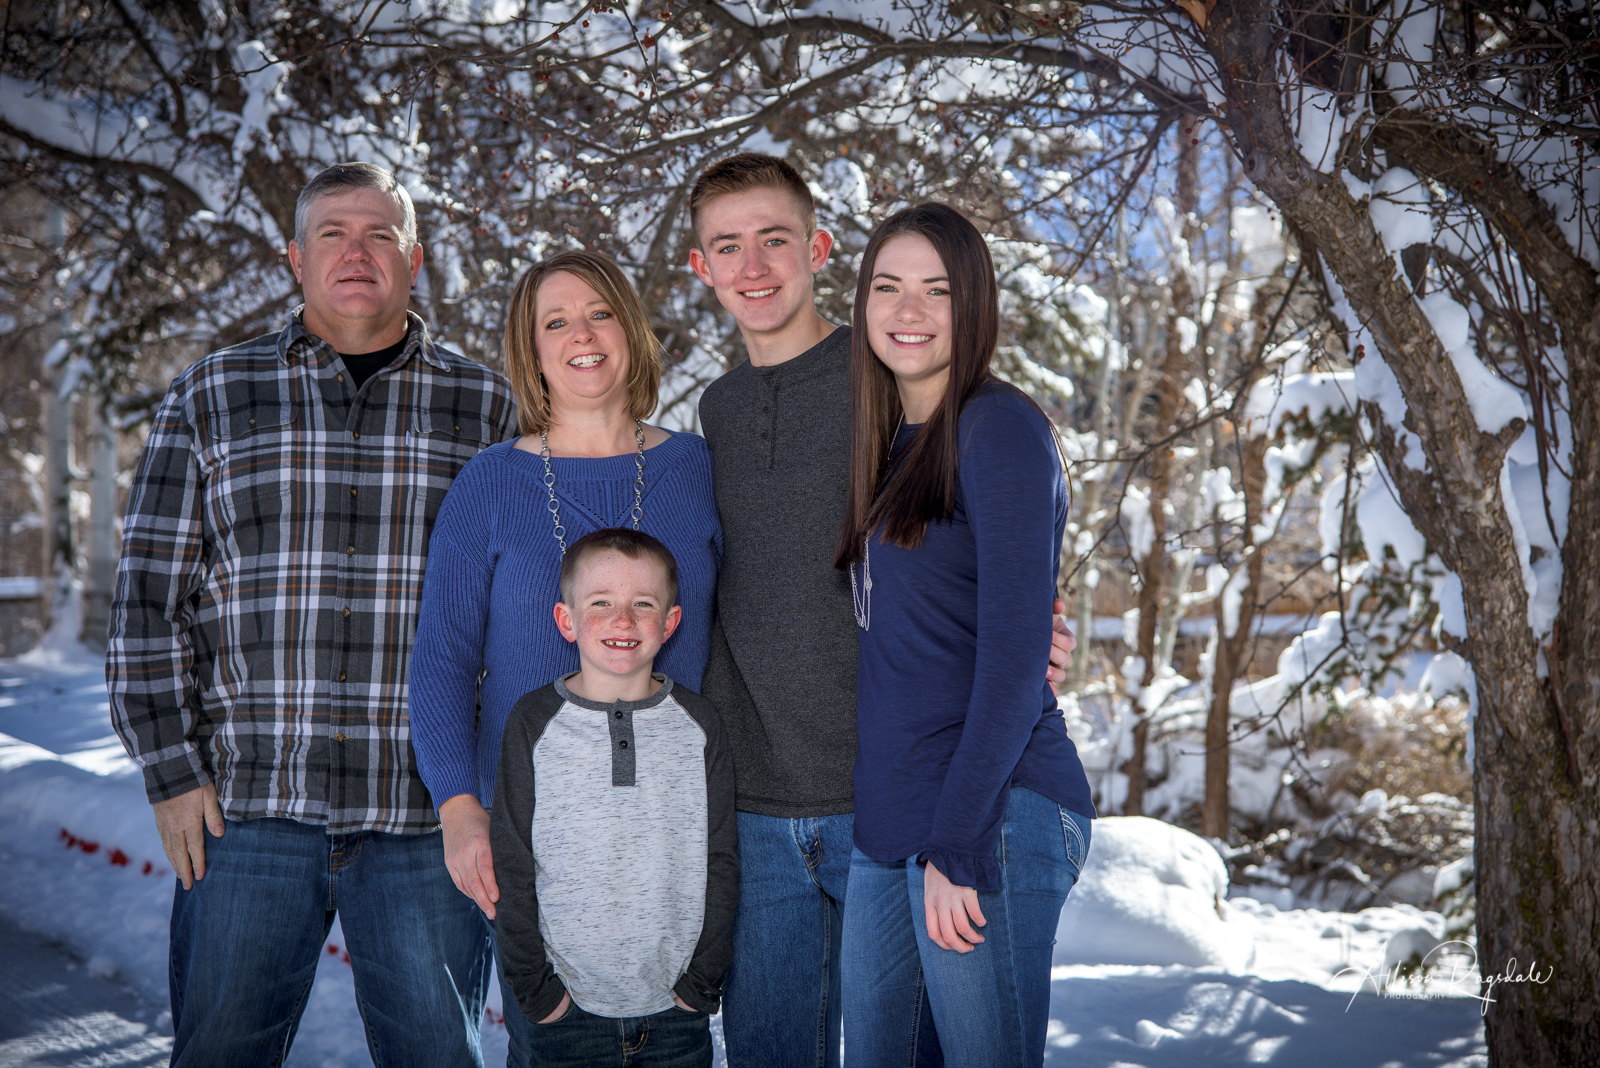 Bayles Family Portraits | Durango Colorado